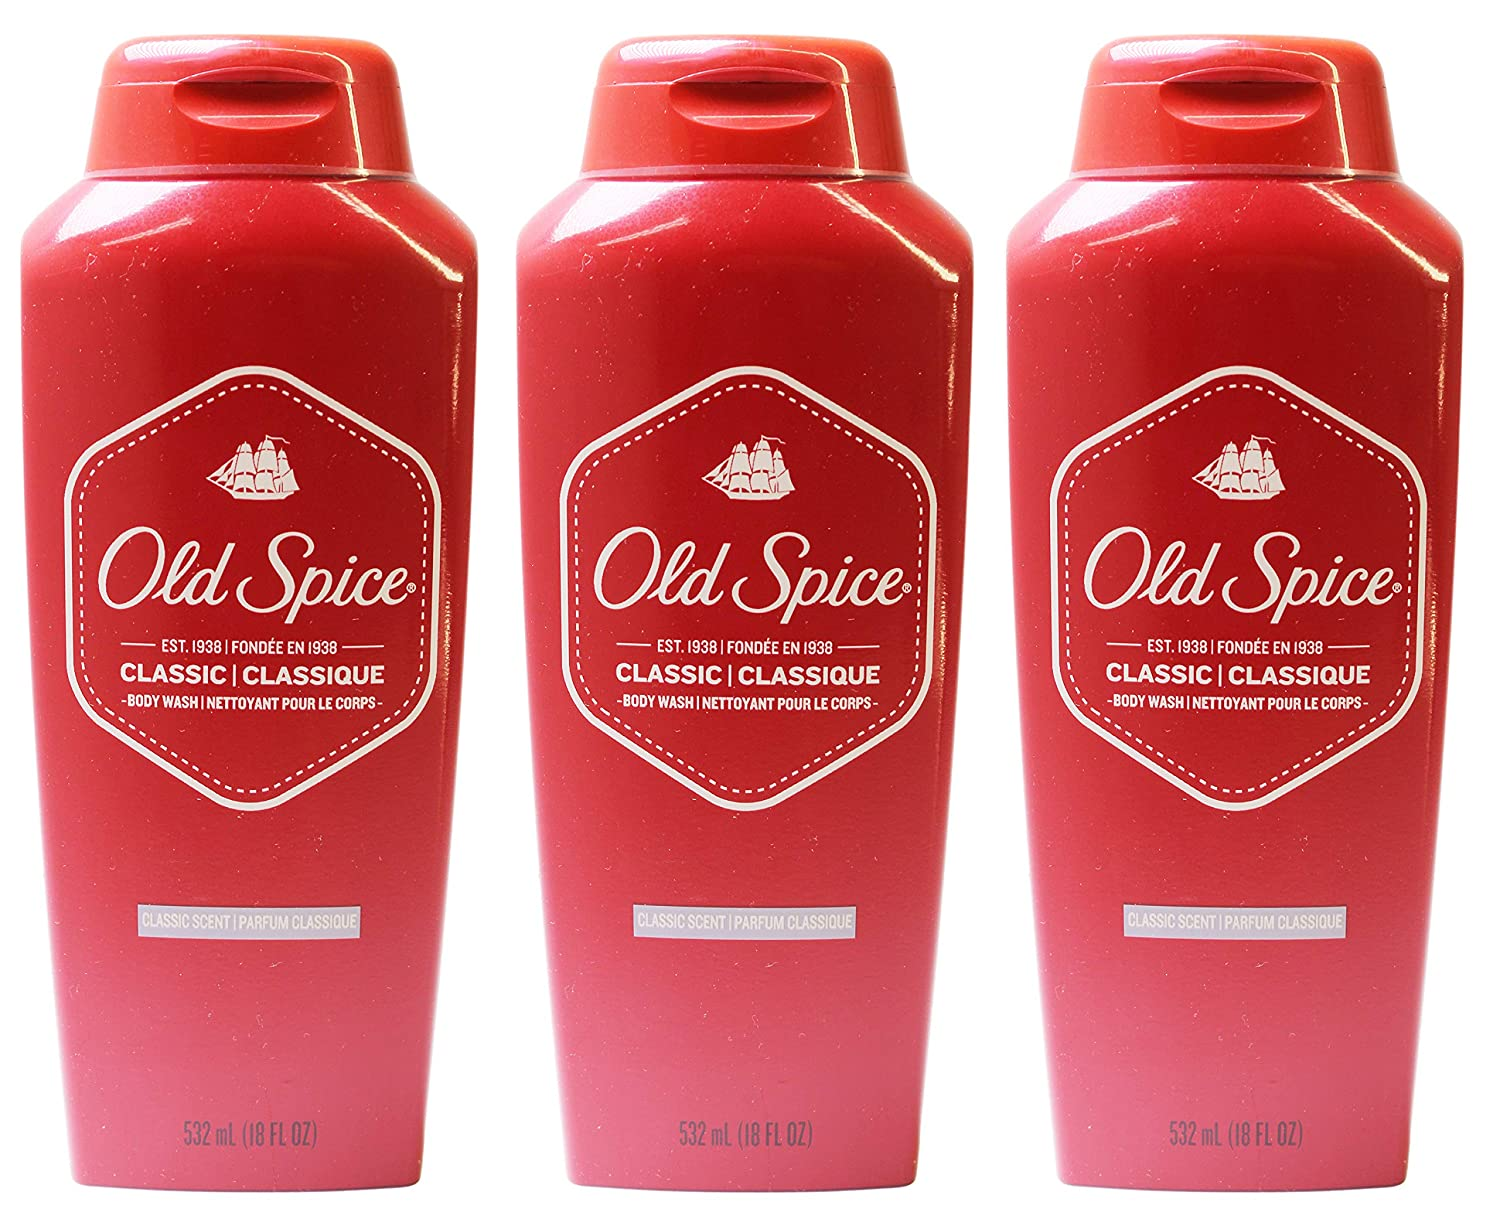 Old Spice Classic Scent Men's Body Wash 18 Fl Oz (Pack of 6) P & G PROCTER131102